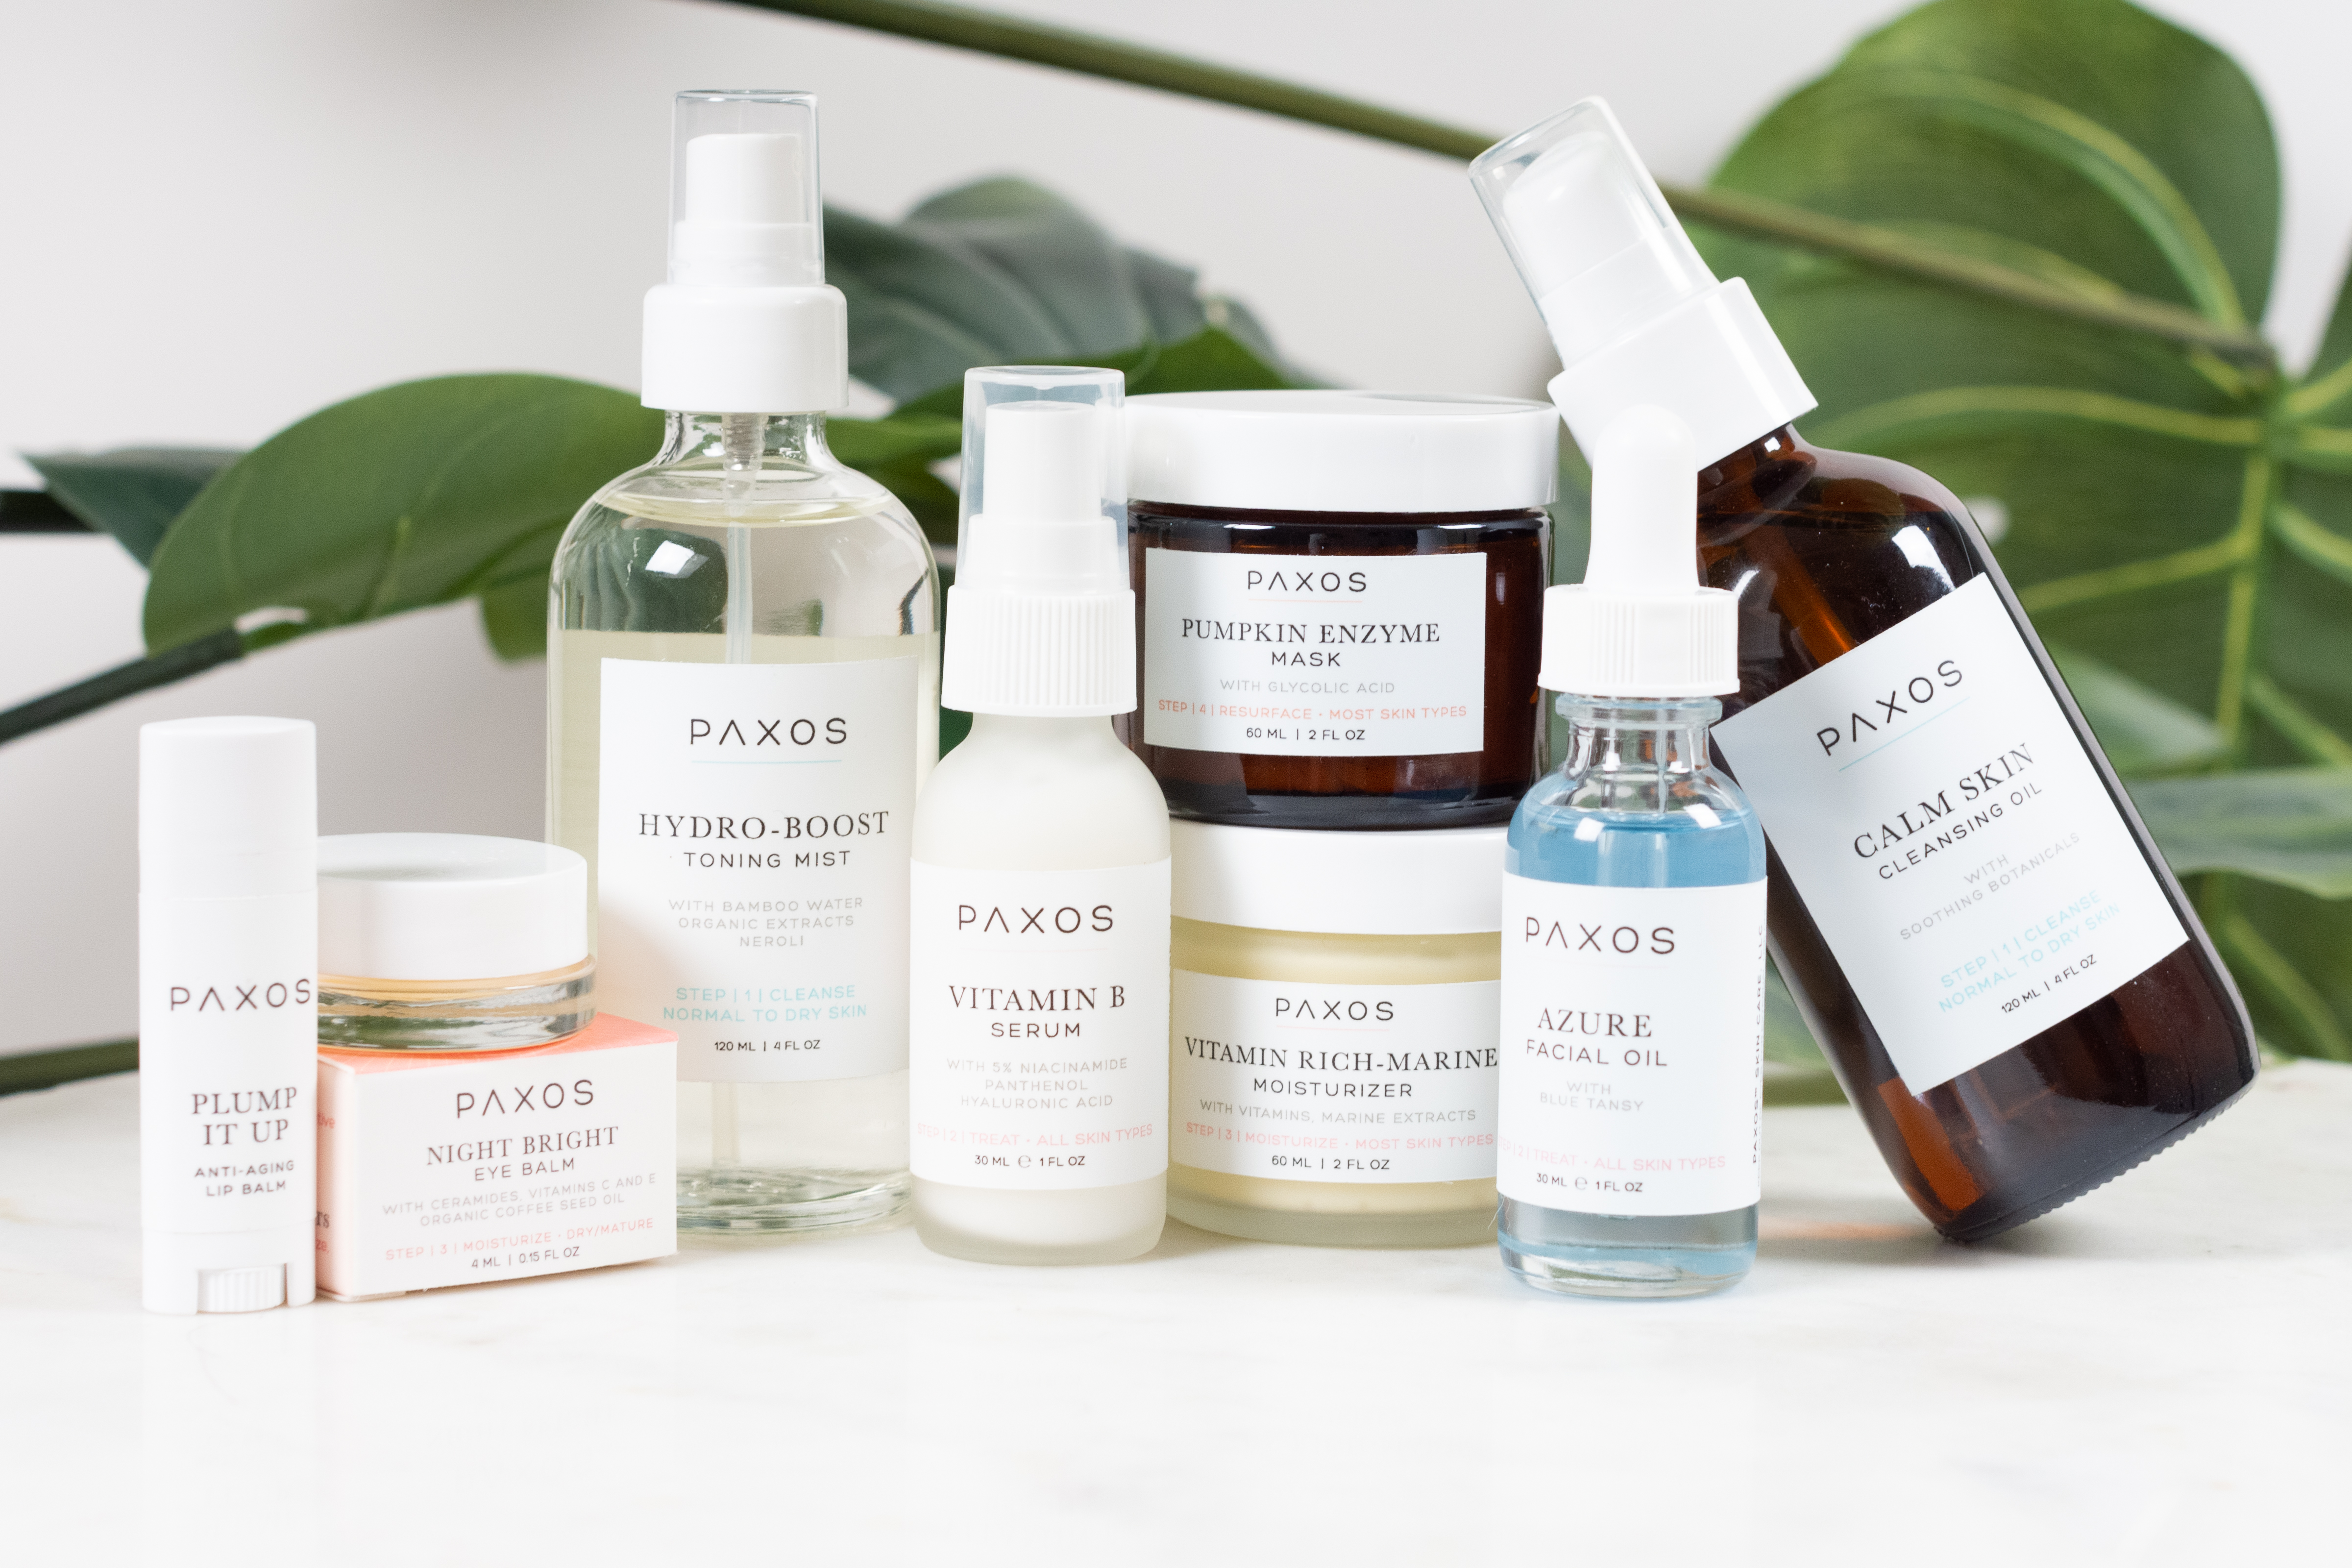 Skincare collection product photography on marble table with greenery background